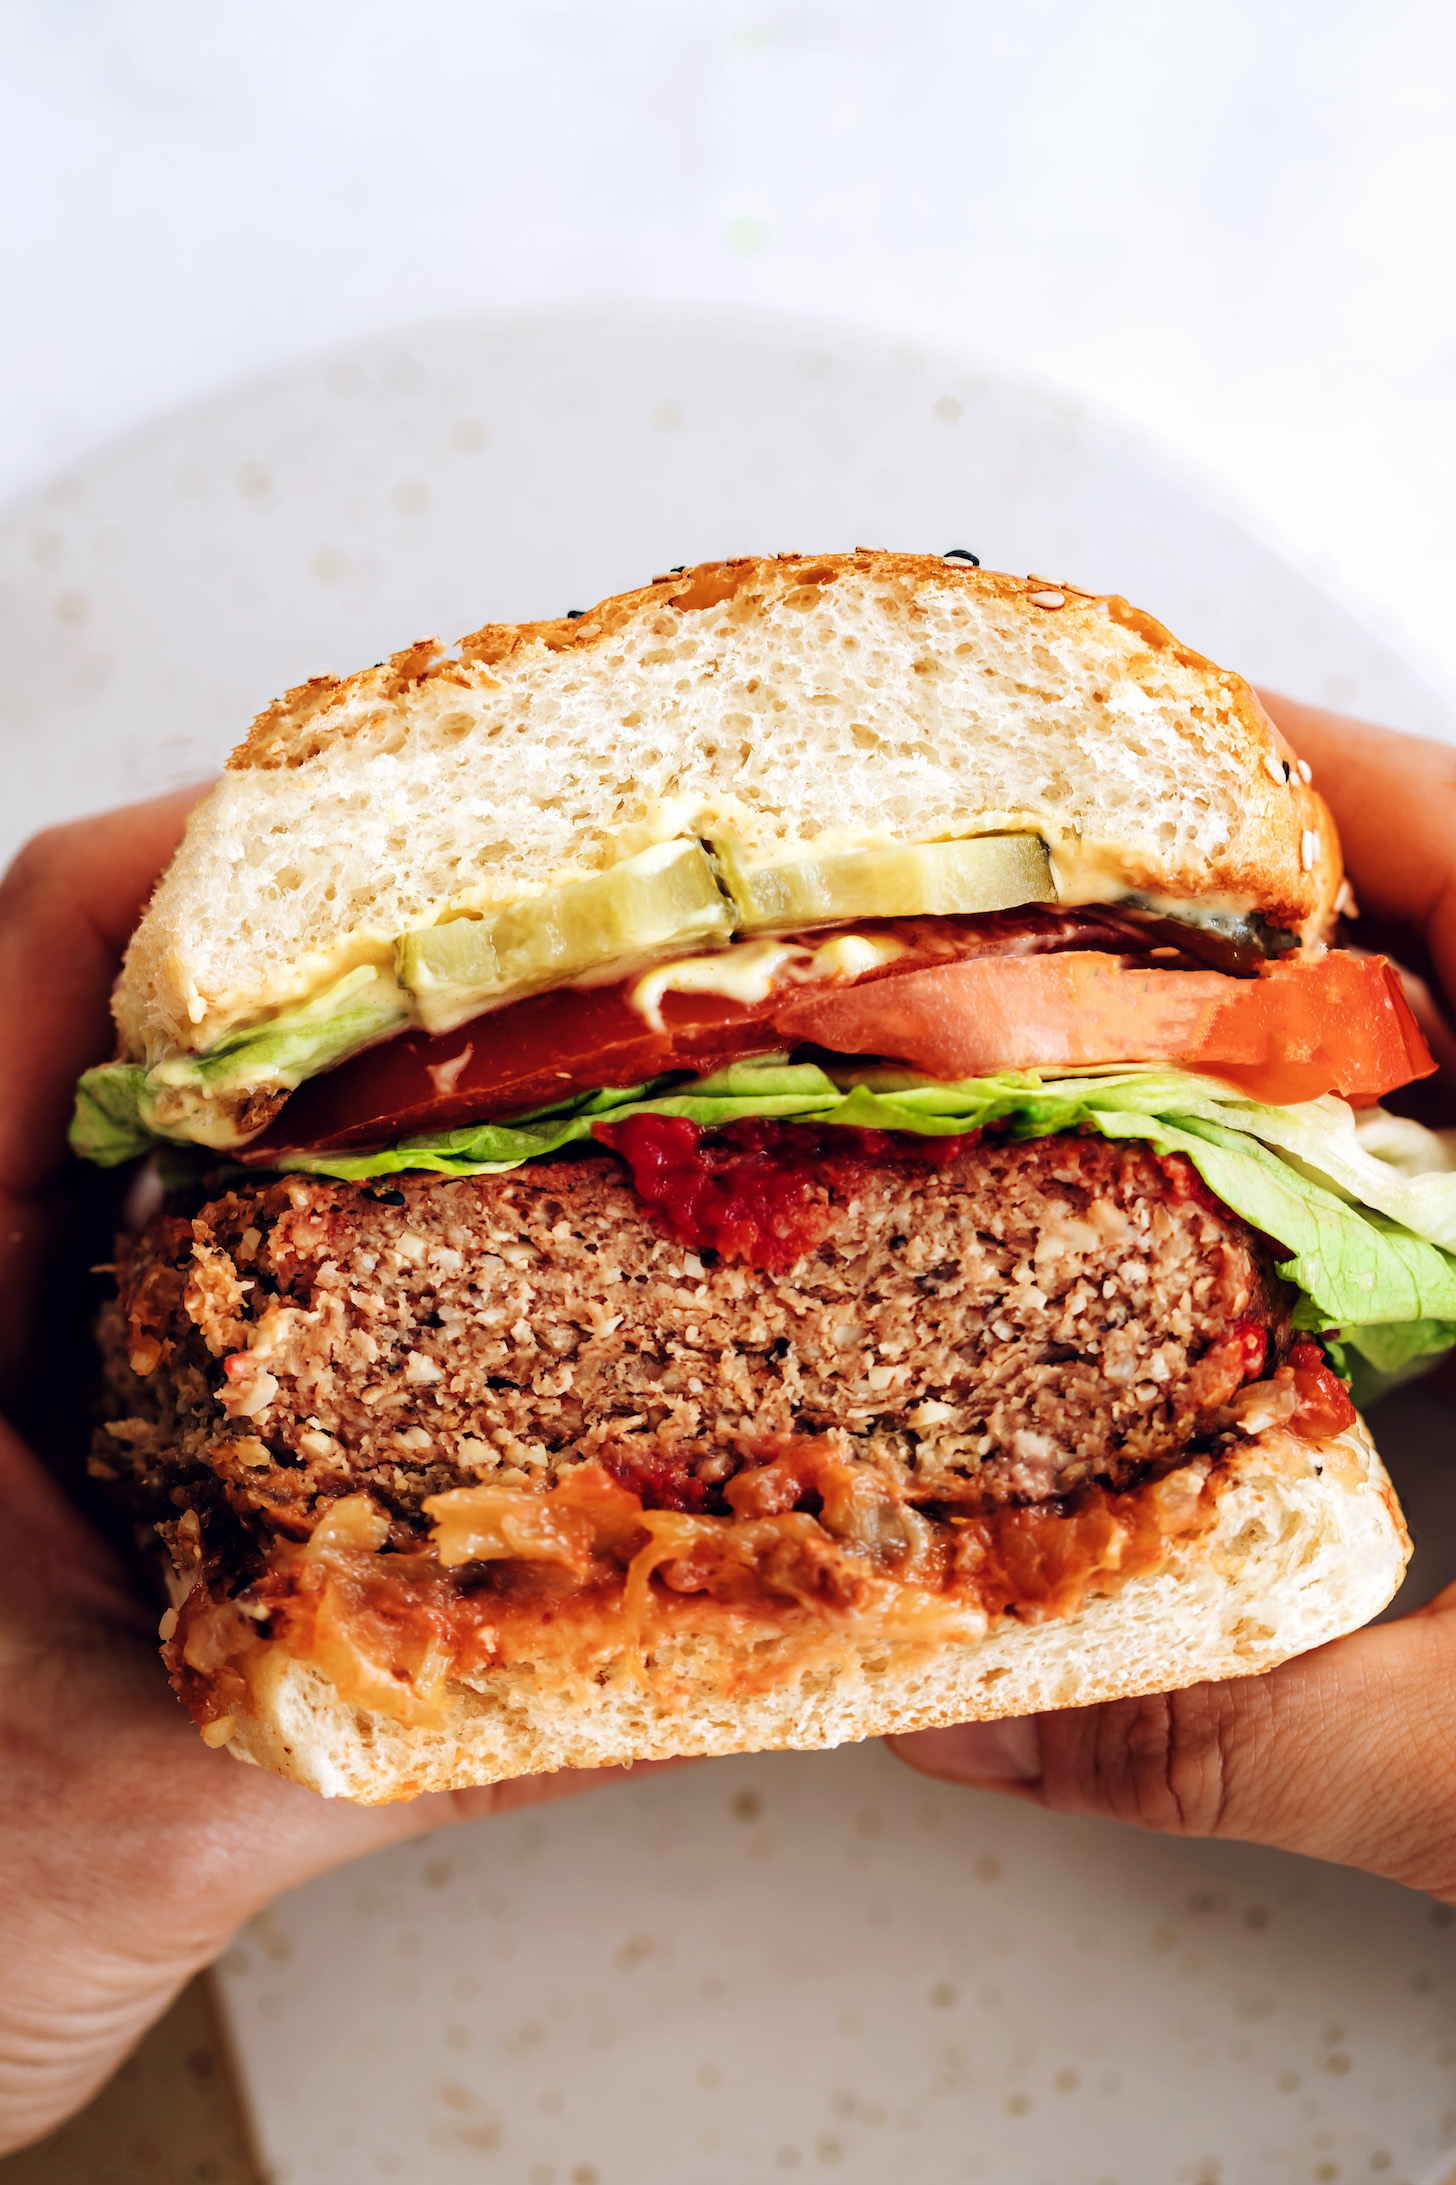 Holding a vegan burger patty in a bun with other toppings